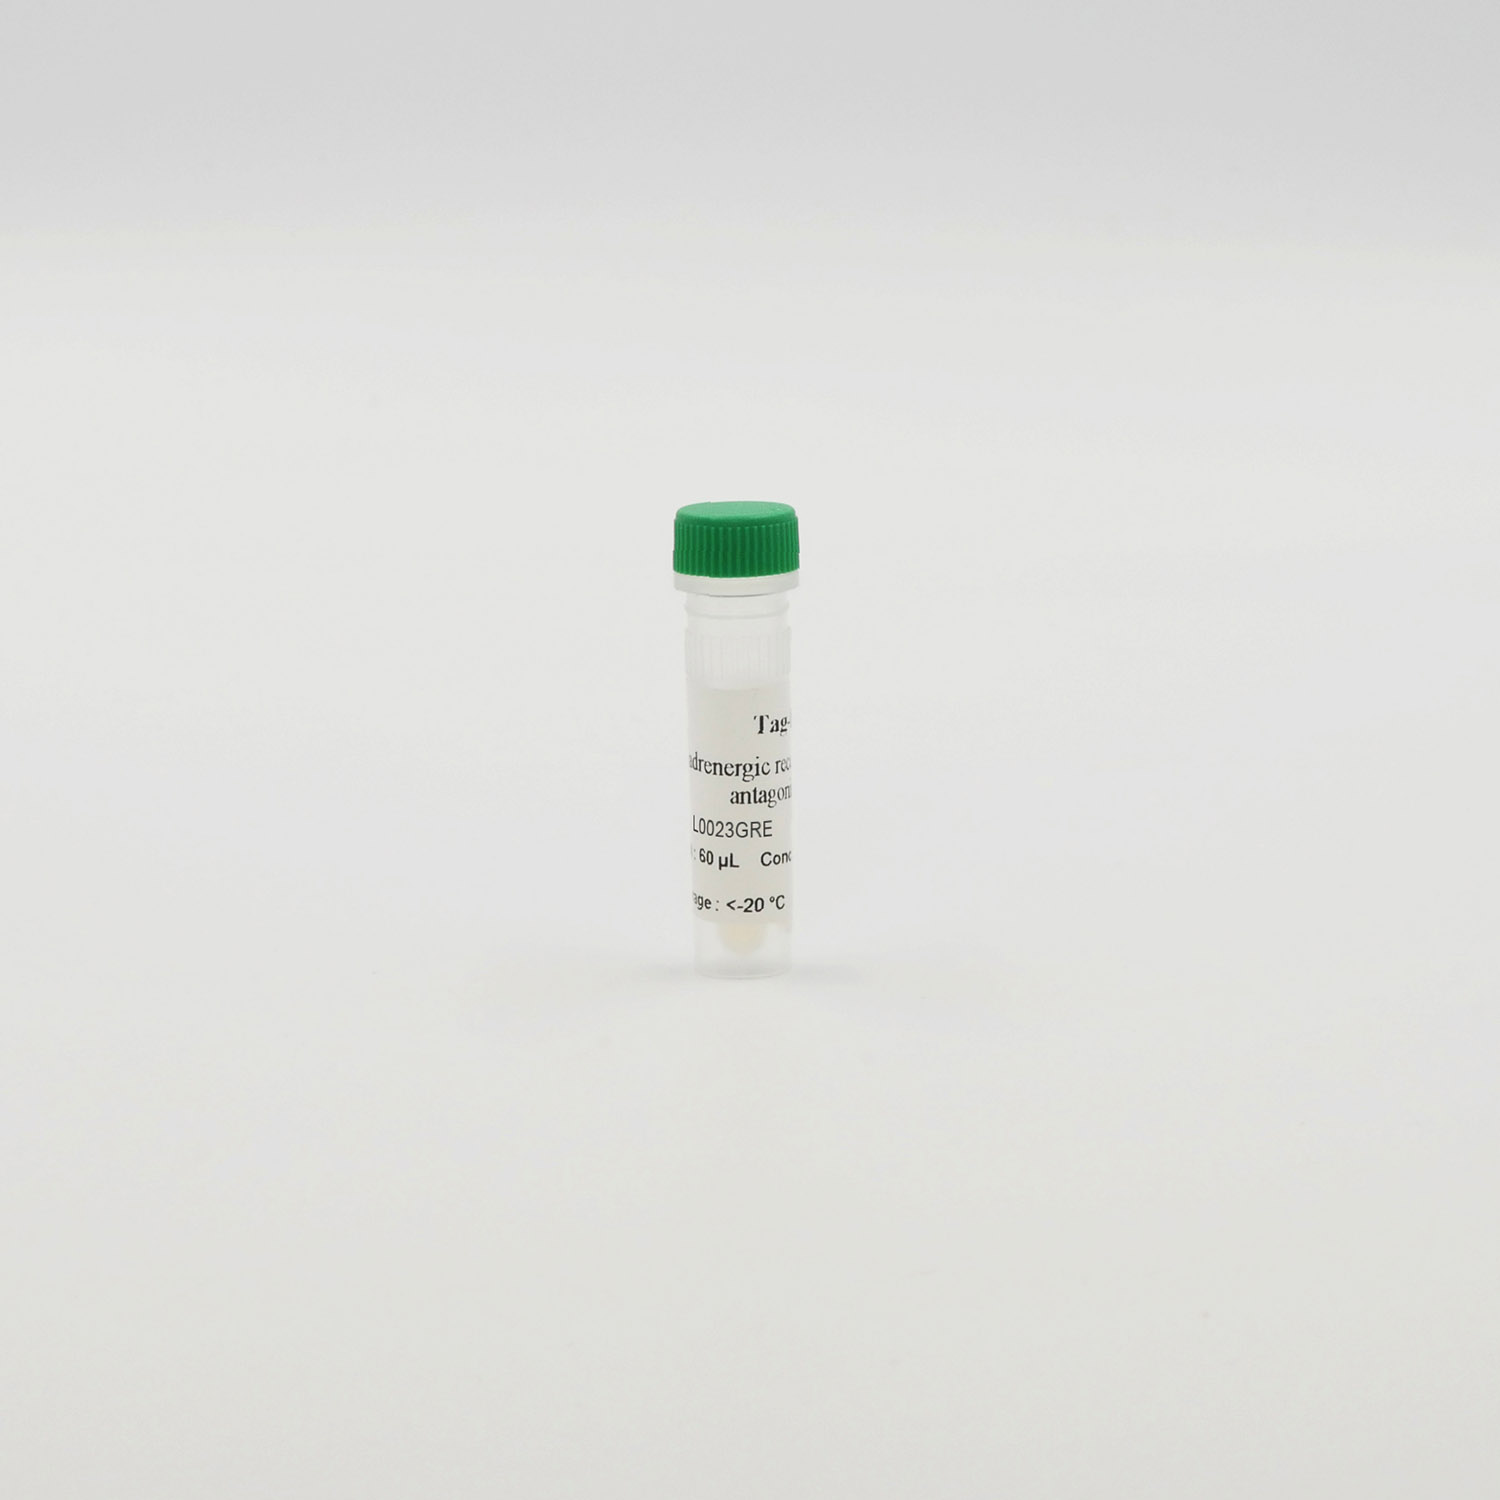 Photography of Beta1 adrenergic receptor green antagonist vial